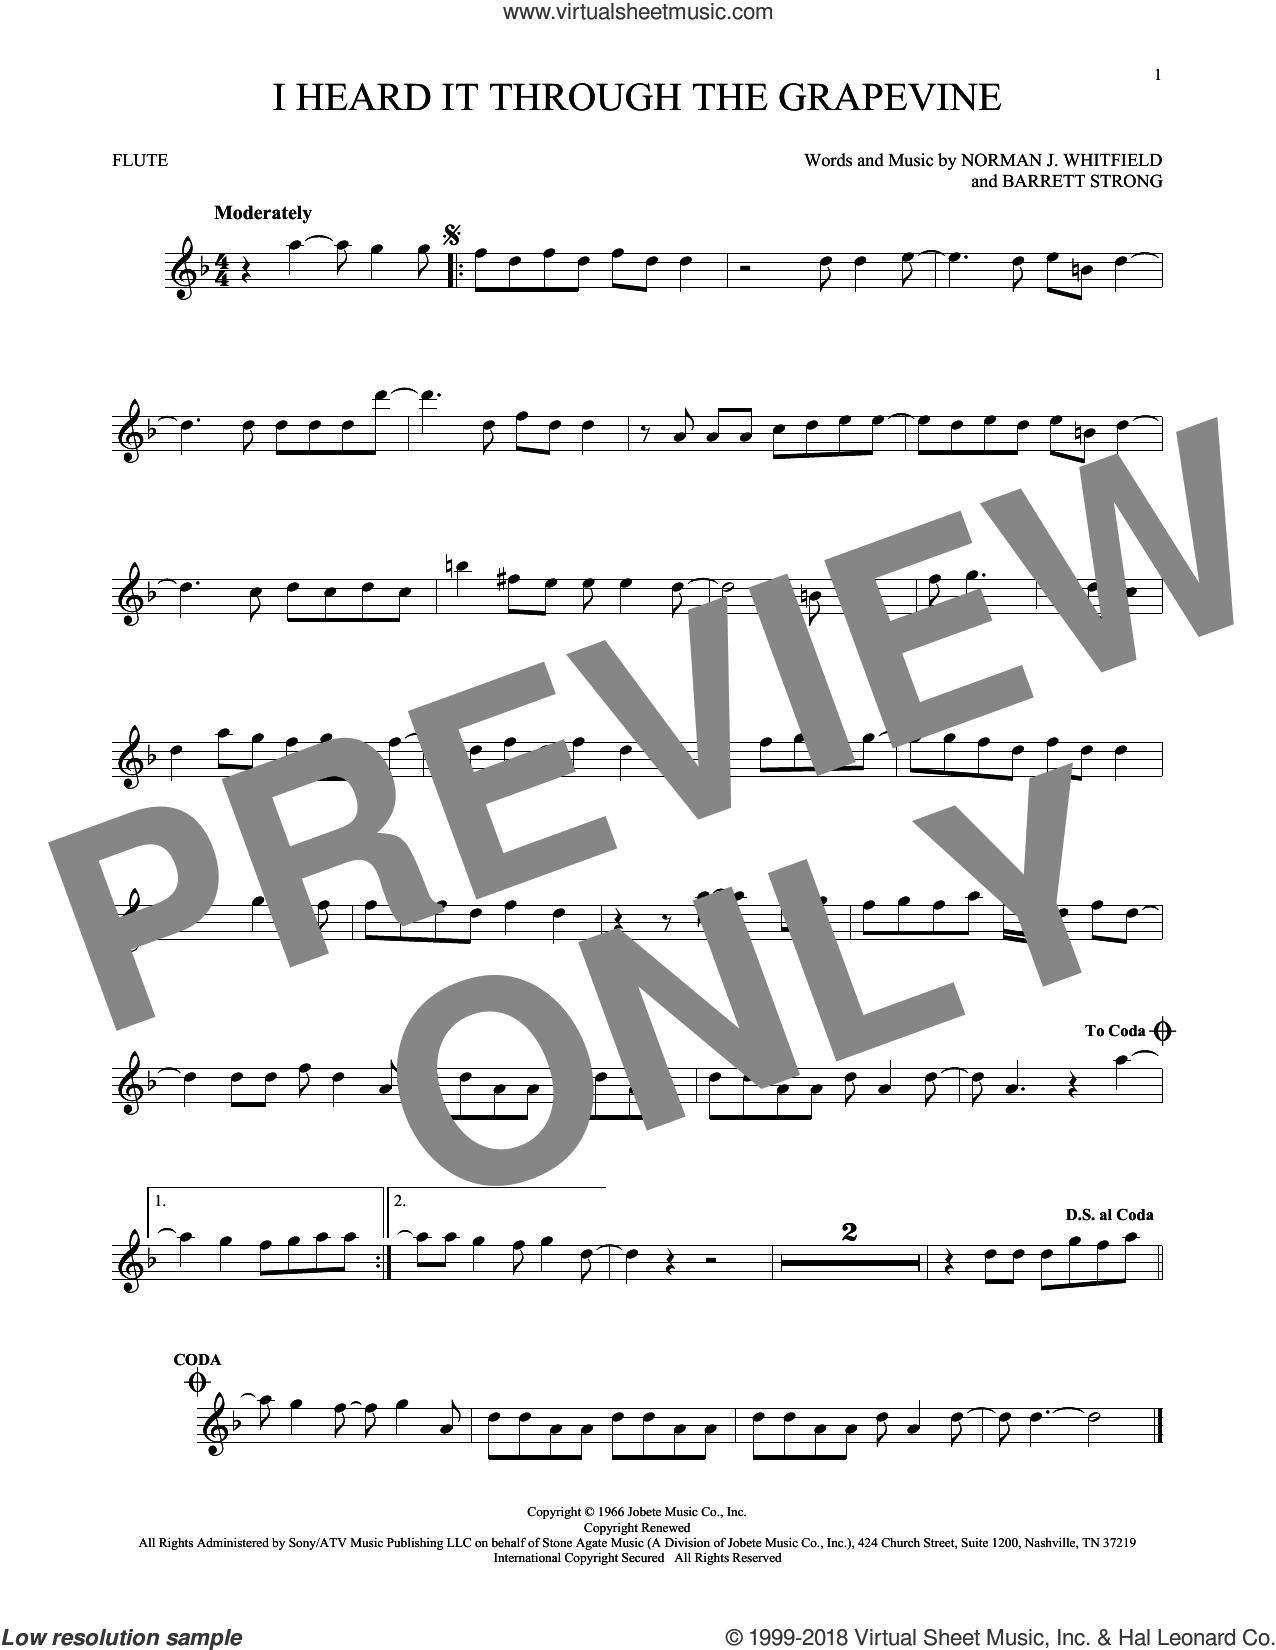 I Heard It Through The Grapevine sheet music for flute solo by Norman Whitfield, Barrett Strong and Norman Whitfield & Barrett Strong, intermediate